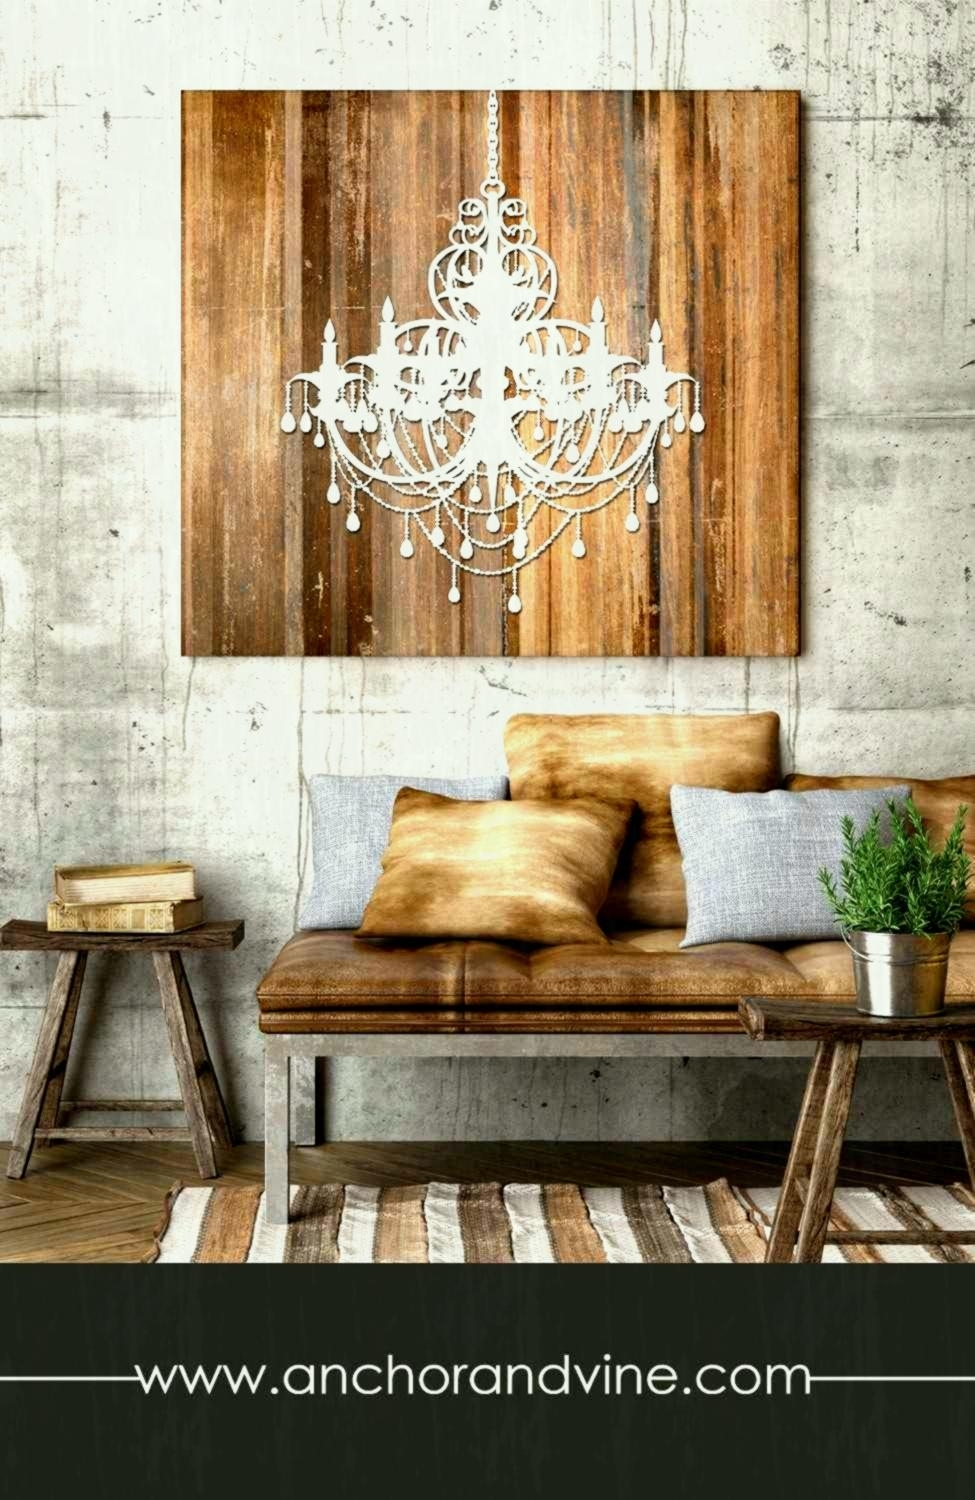 Large Chandelier Wall Art Unique Canvas Oversized Decor Of For Most Current Chandelier Wall Art (View 18 of 20)